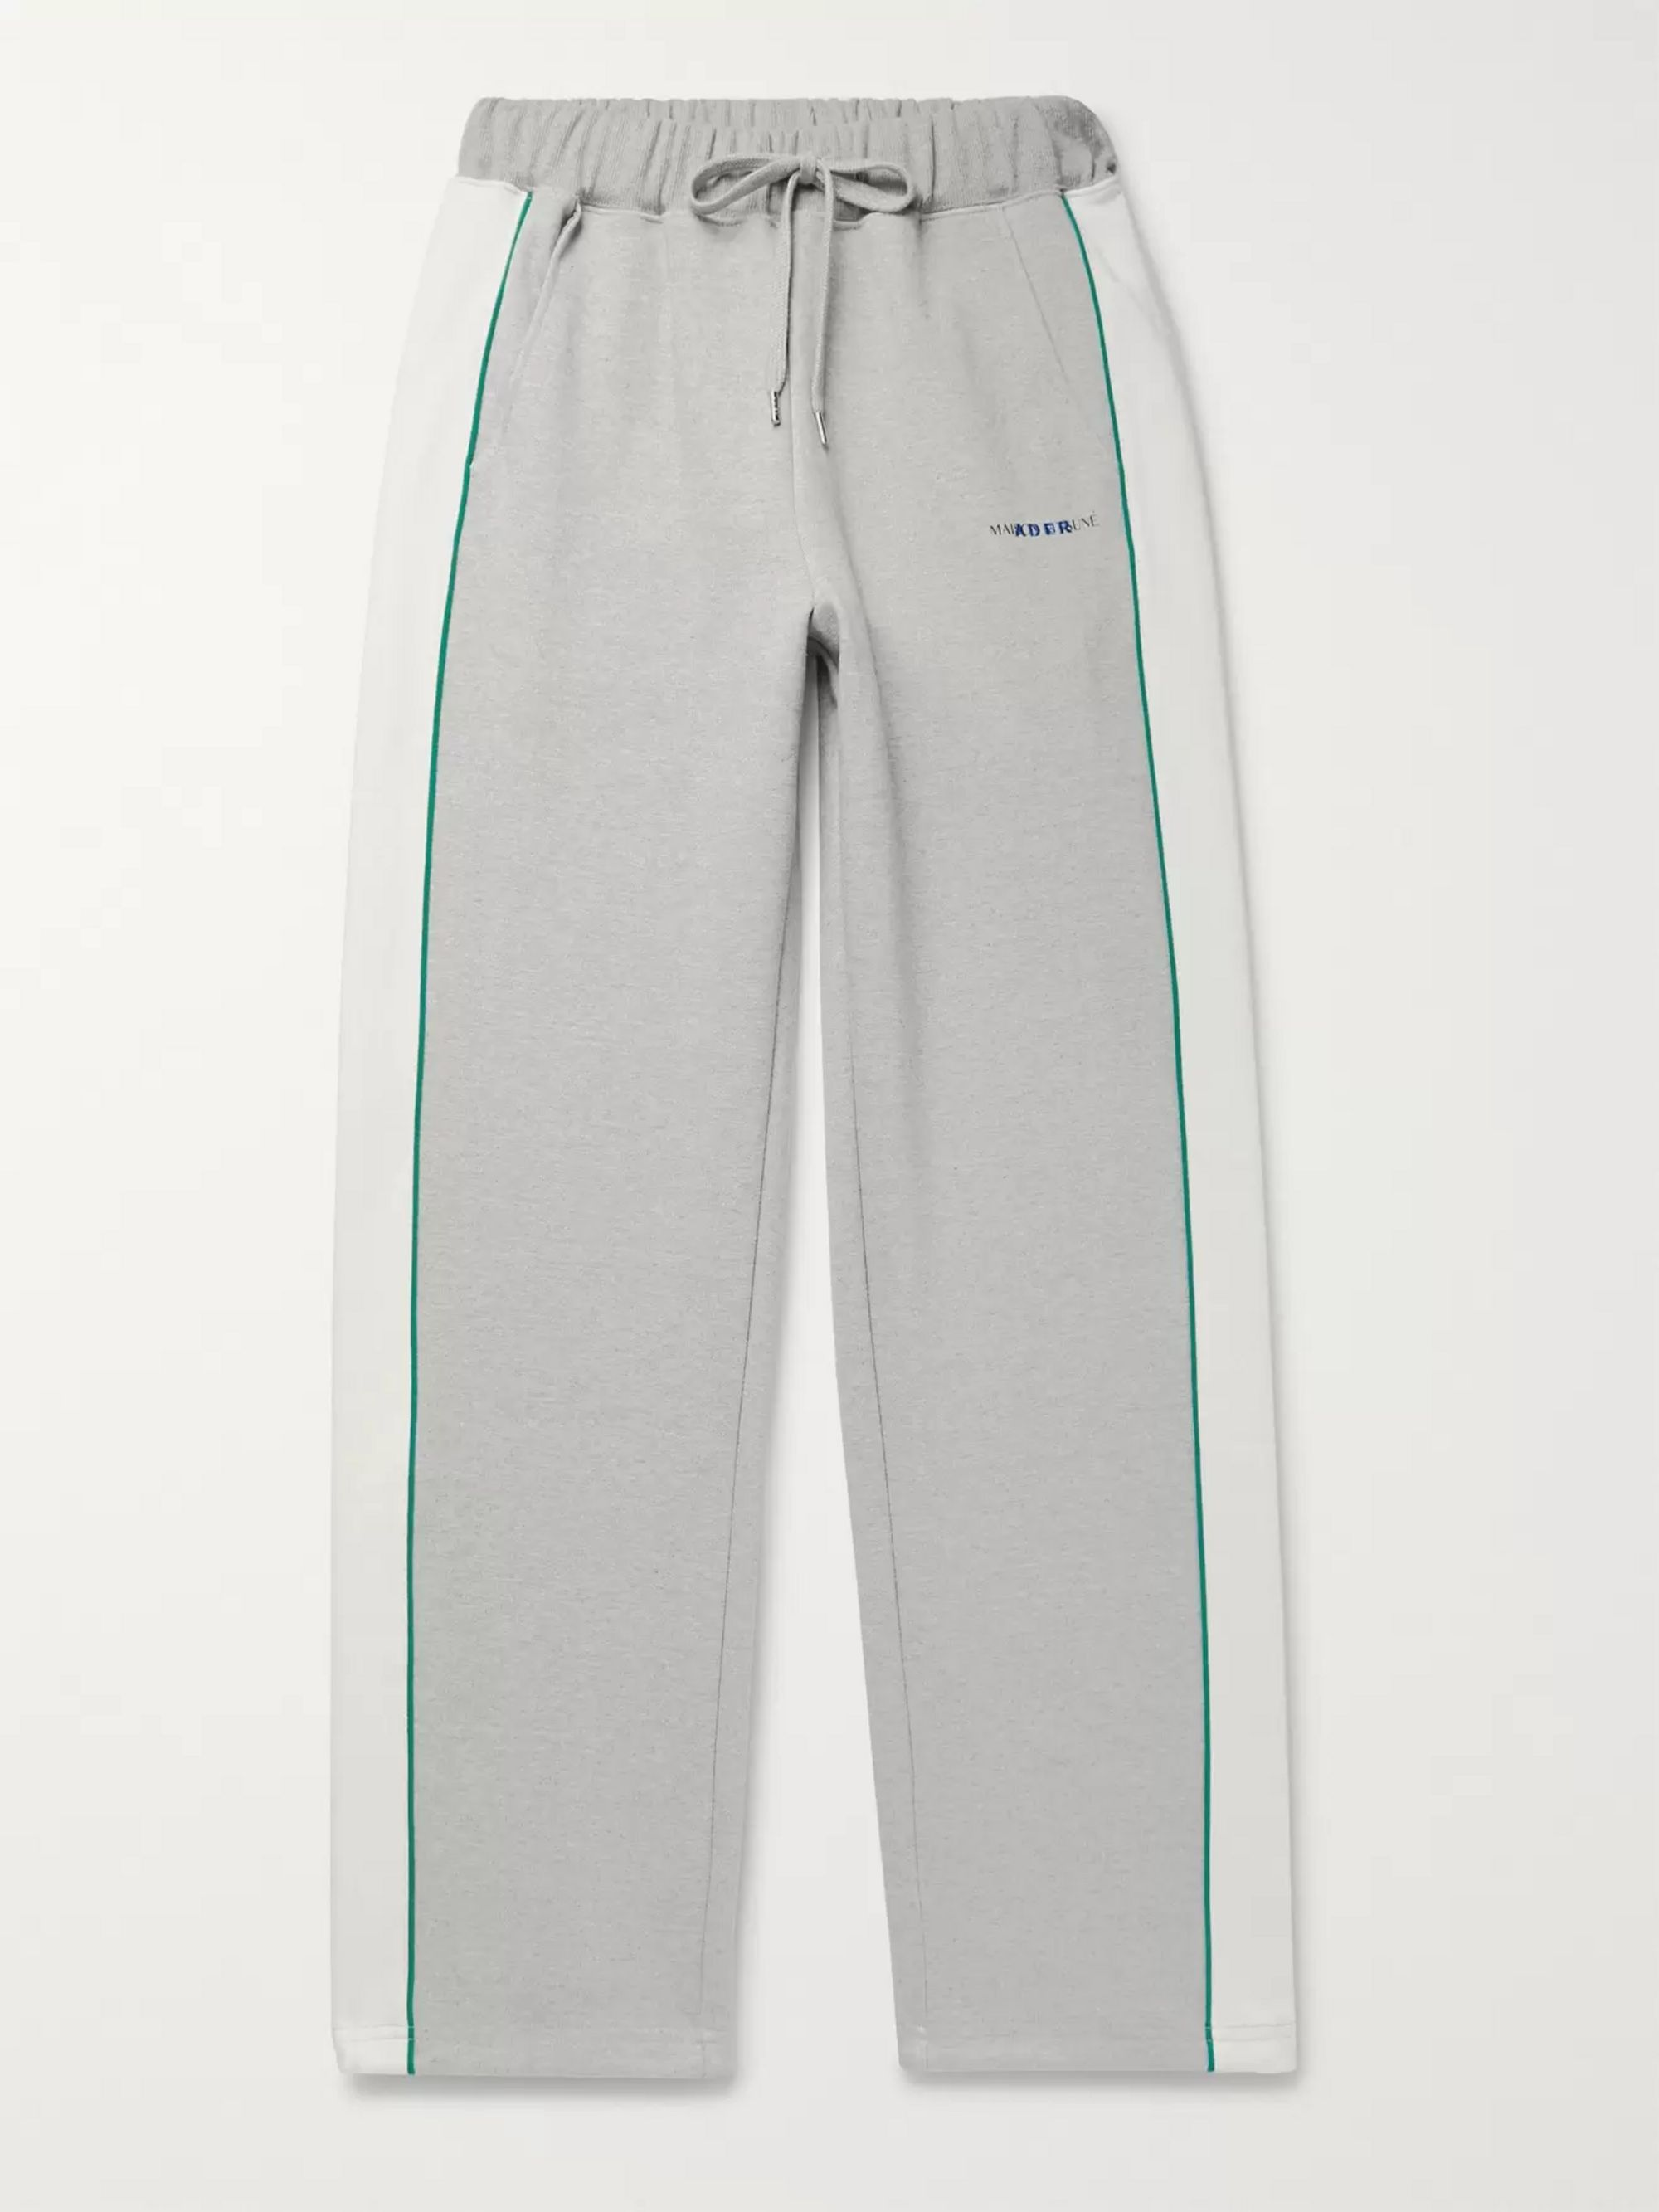 Maison Kitsuné + ADER error Piped Cotton-Jersey Sweatpants